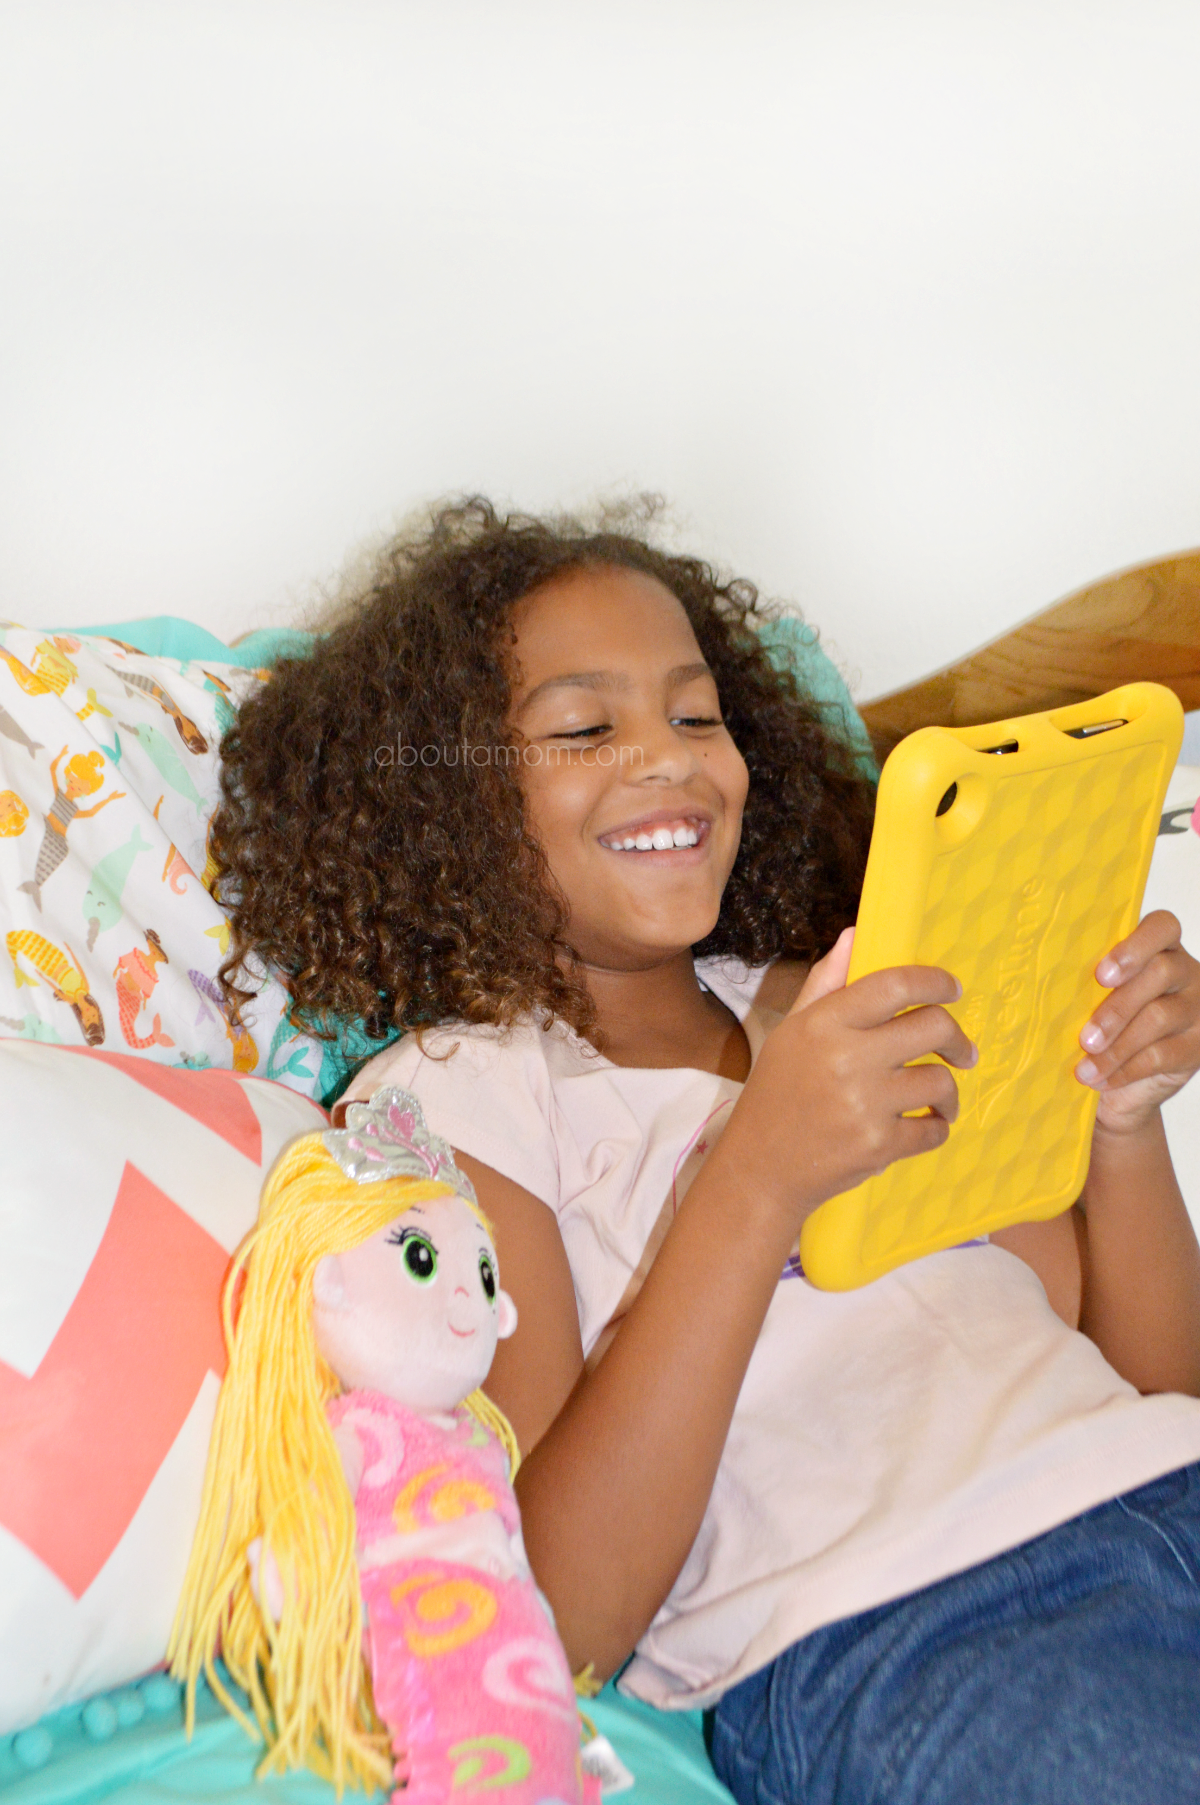 Why I Think the Amazon Fire HD 8 Kids Edition Tablet is